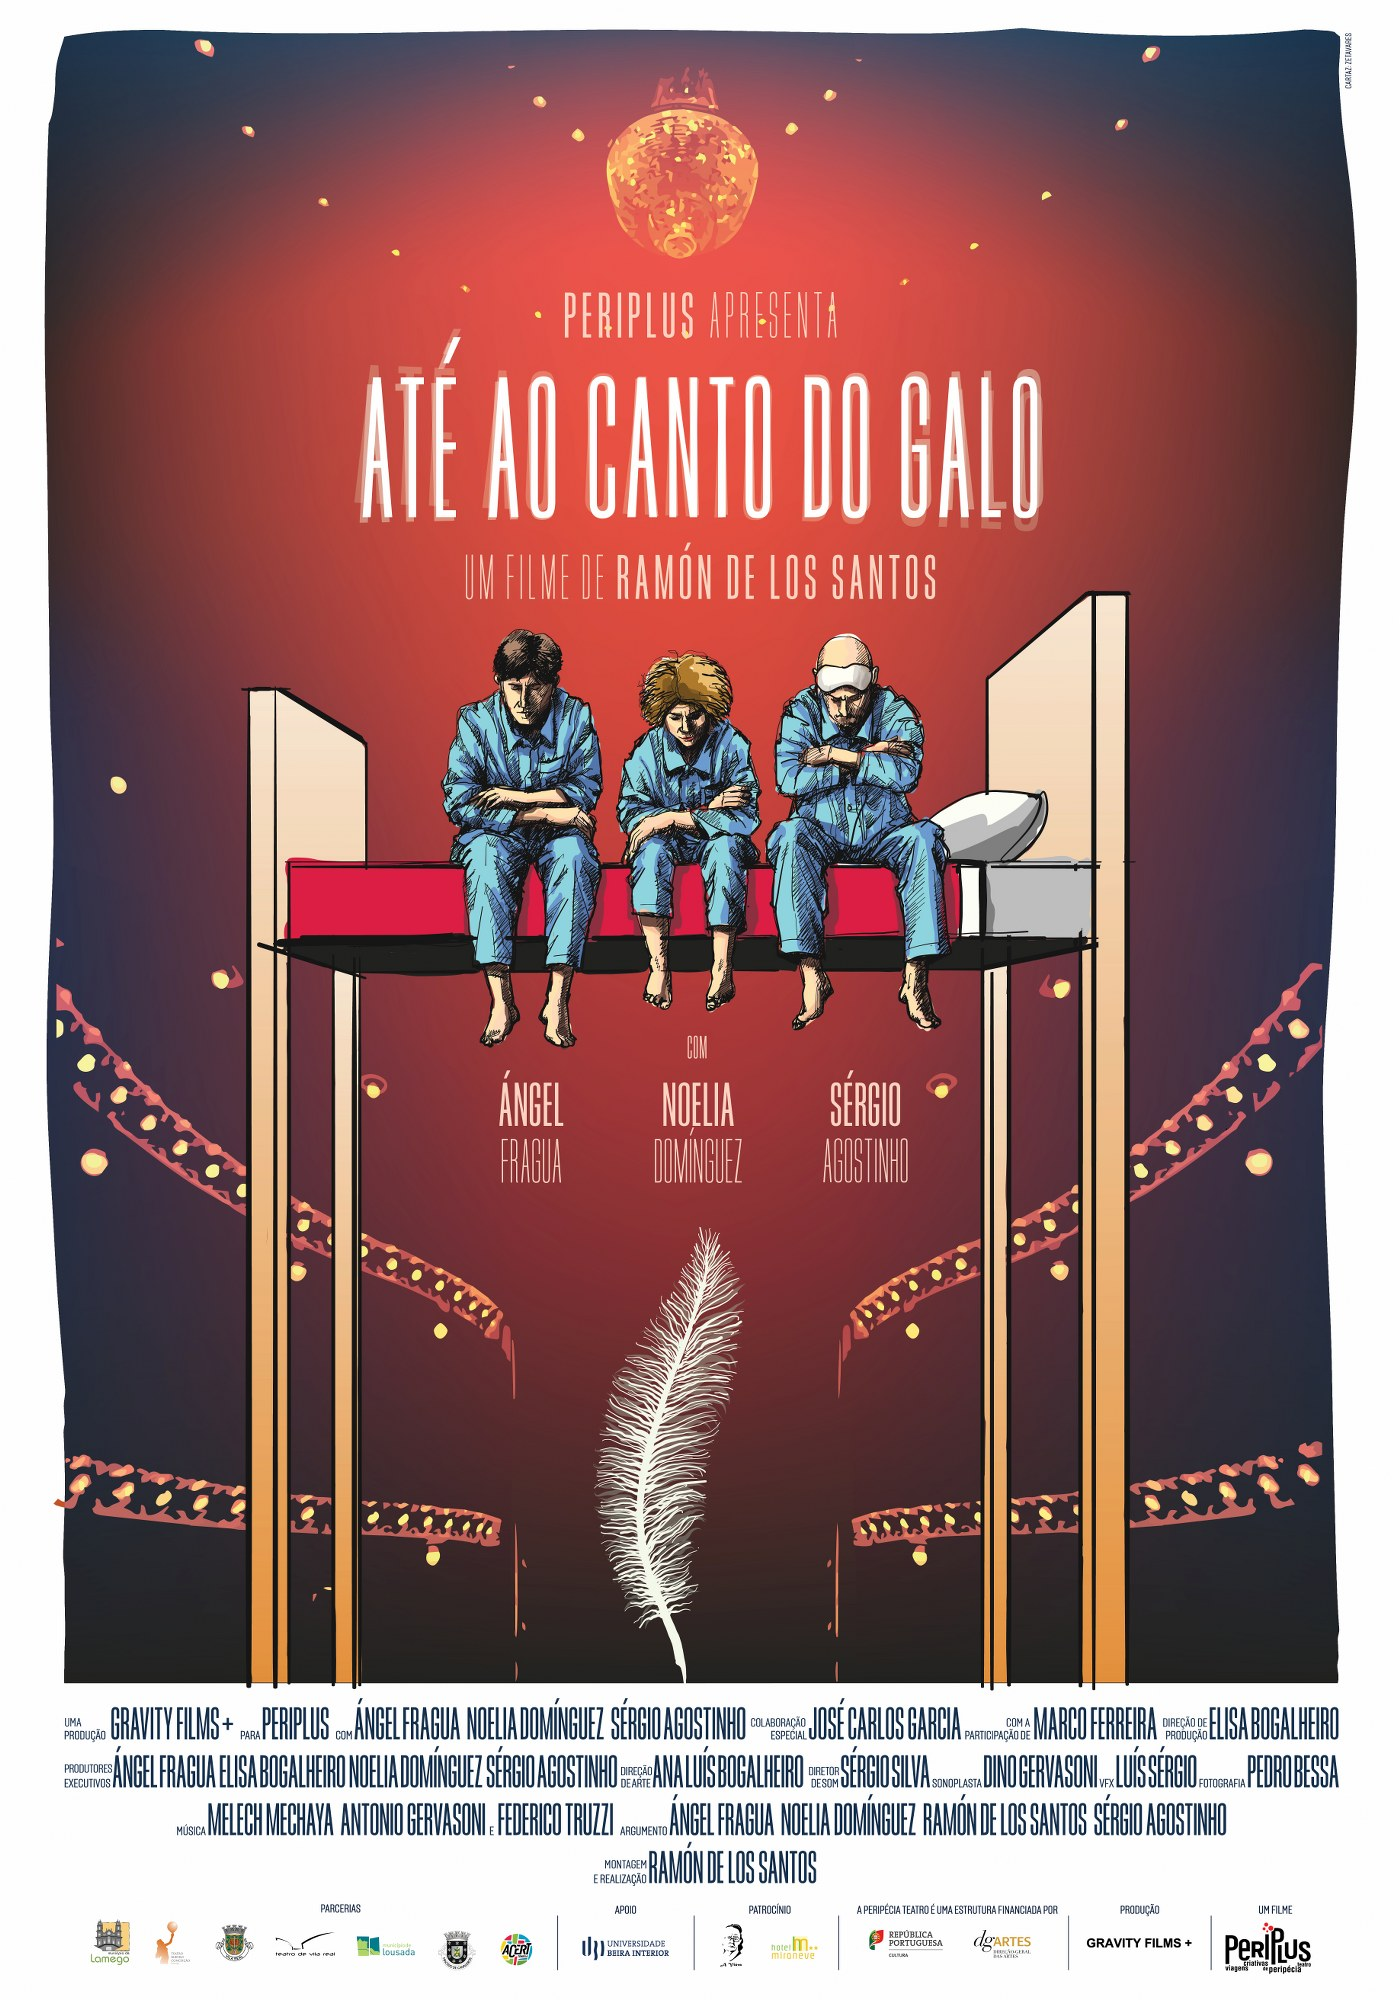 Atè ao canto do galo